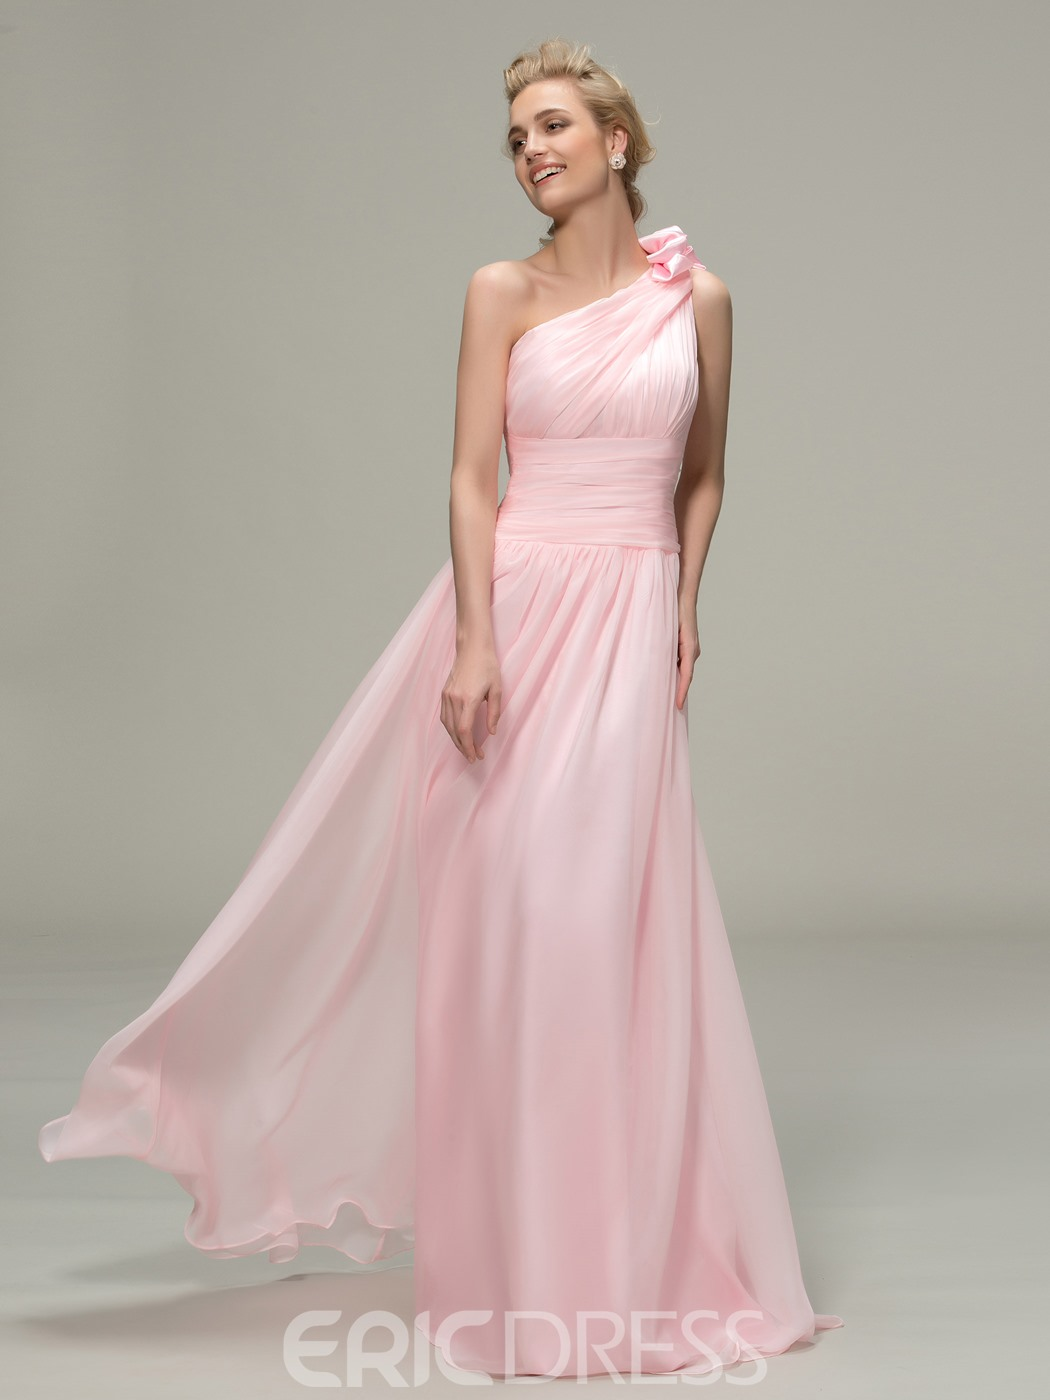 Concise One Shoulder Ruched A-Line Bridesmaid Dress